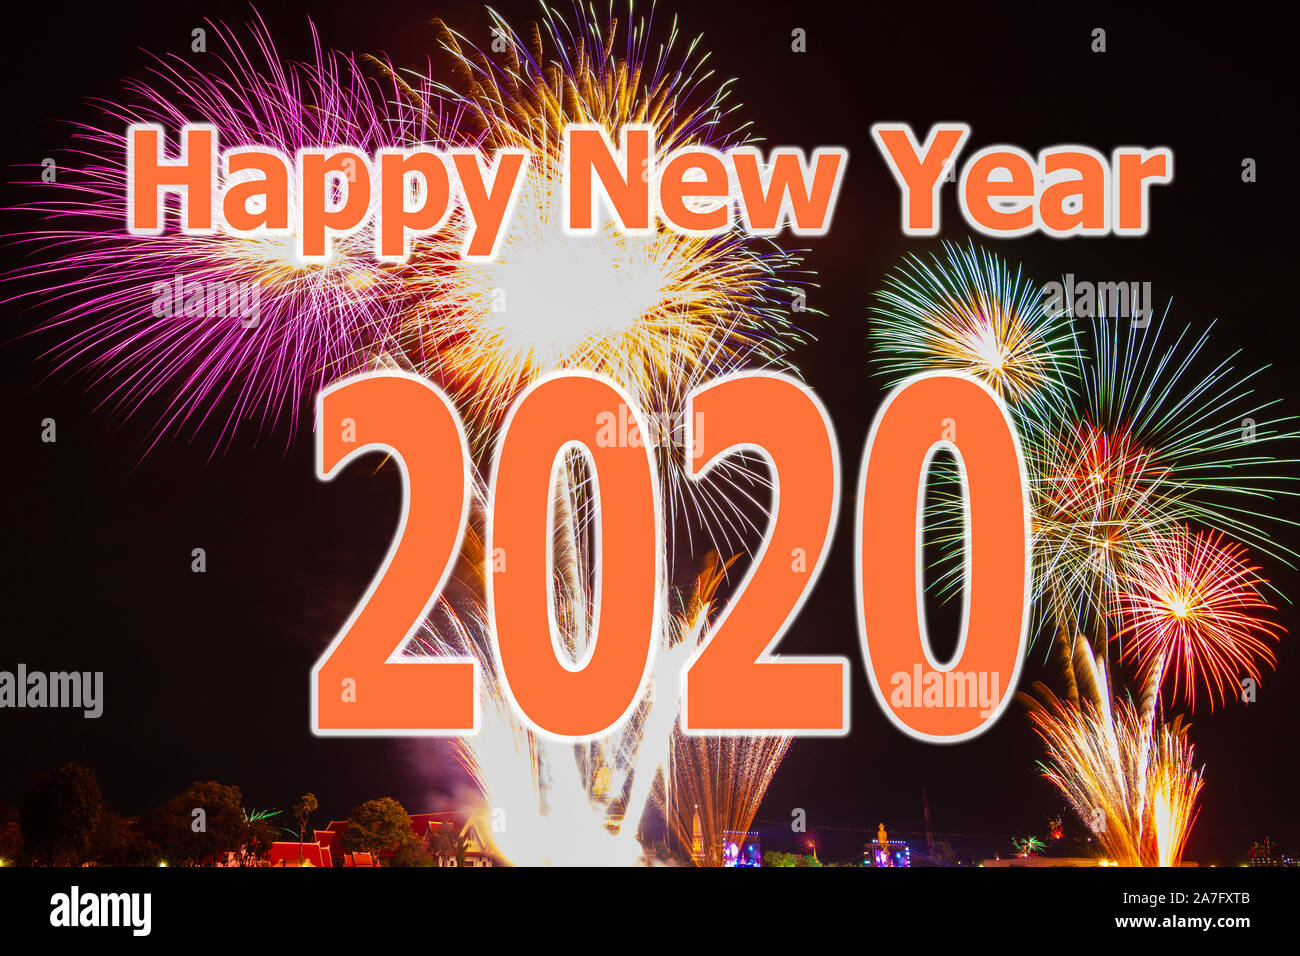 Happy New Year 2020 With Fireworks Festival Background Disign